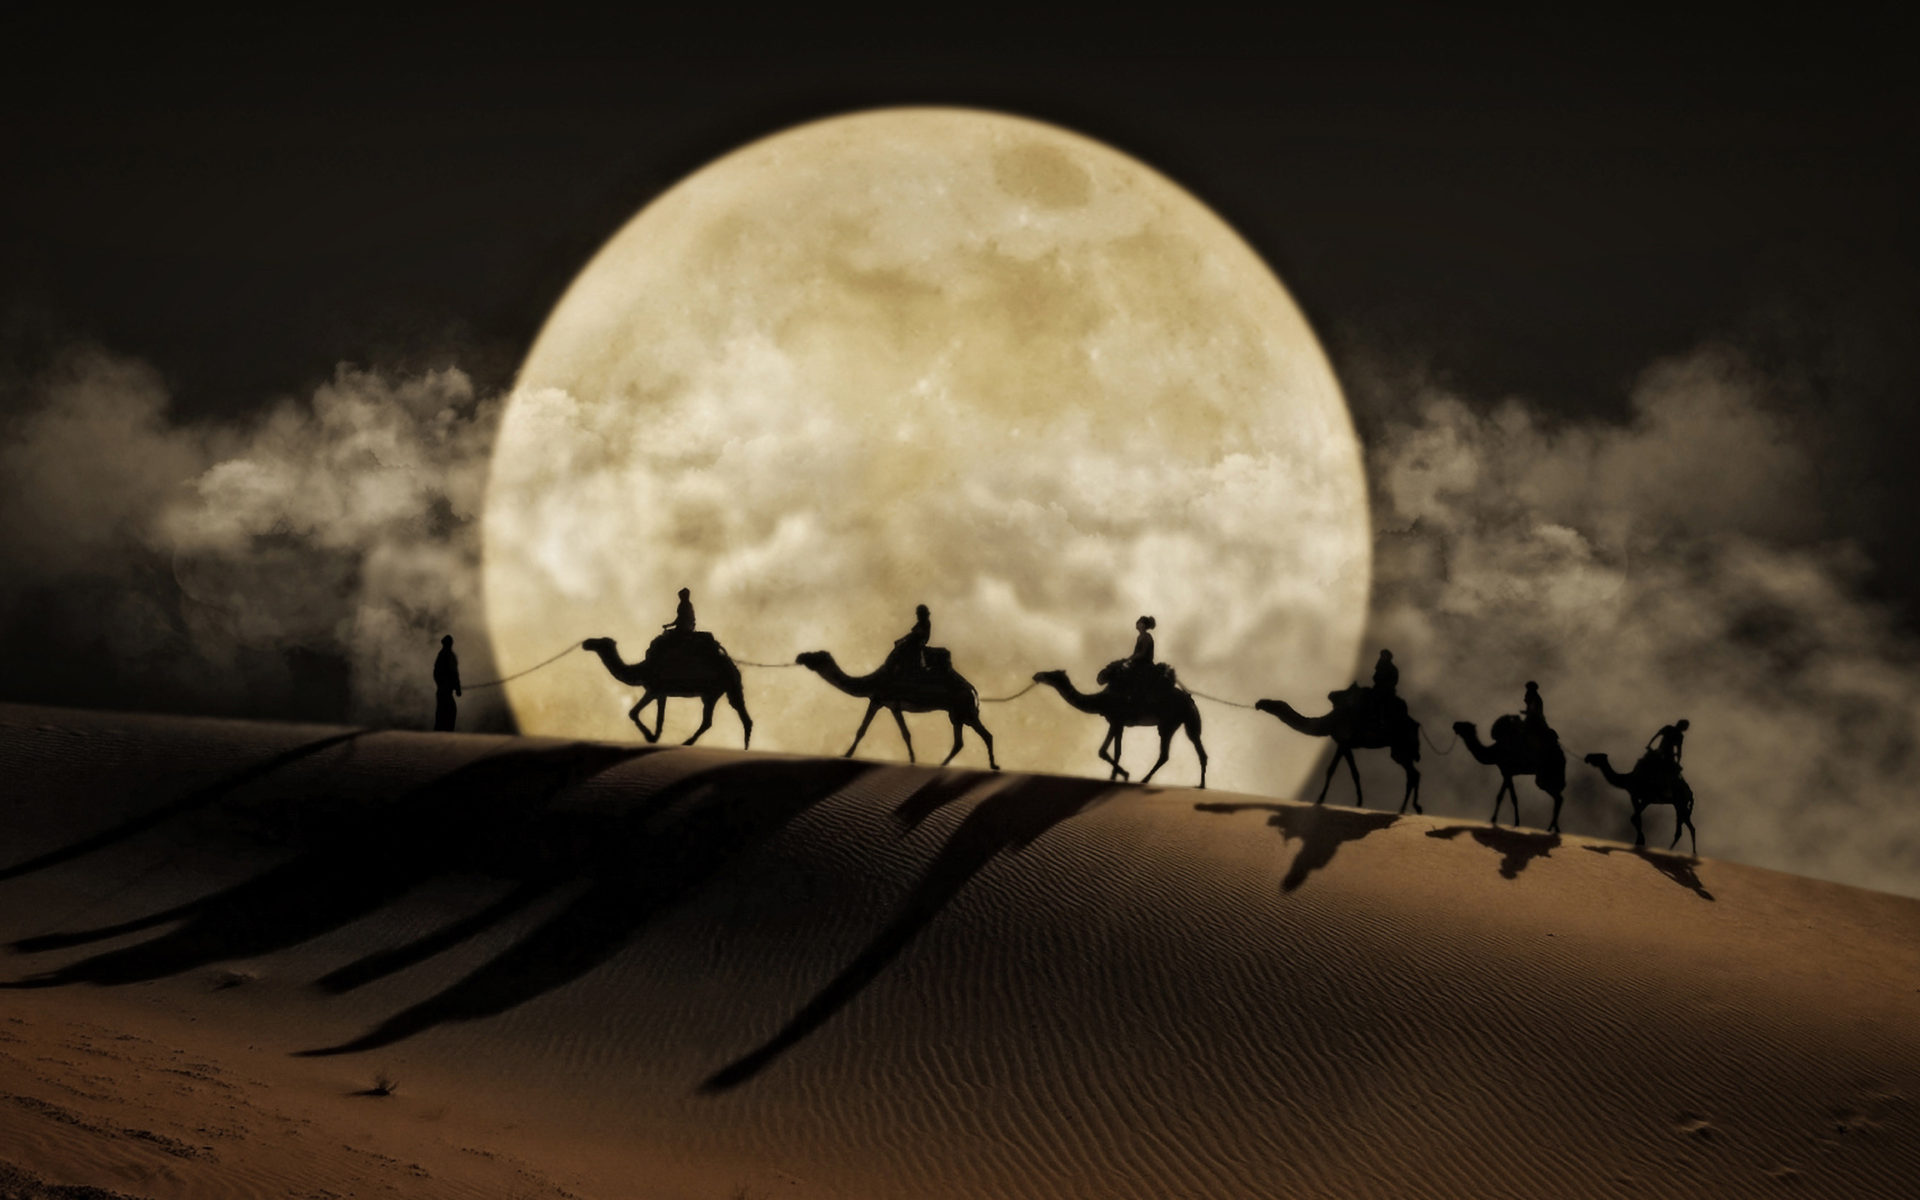 3d Wallpapers Desktop Free Download Animation Windows 7 Desert Moon Camel Art Desktop Wallpaper Hd For Mobile